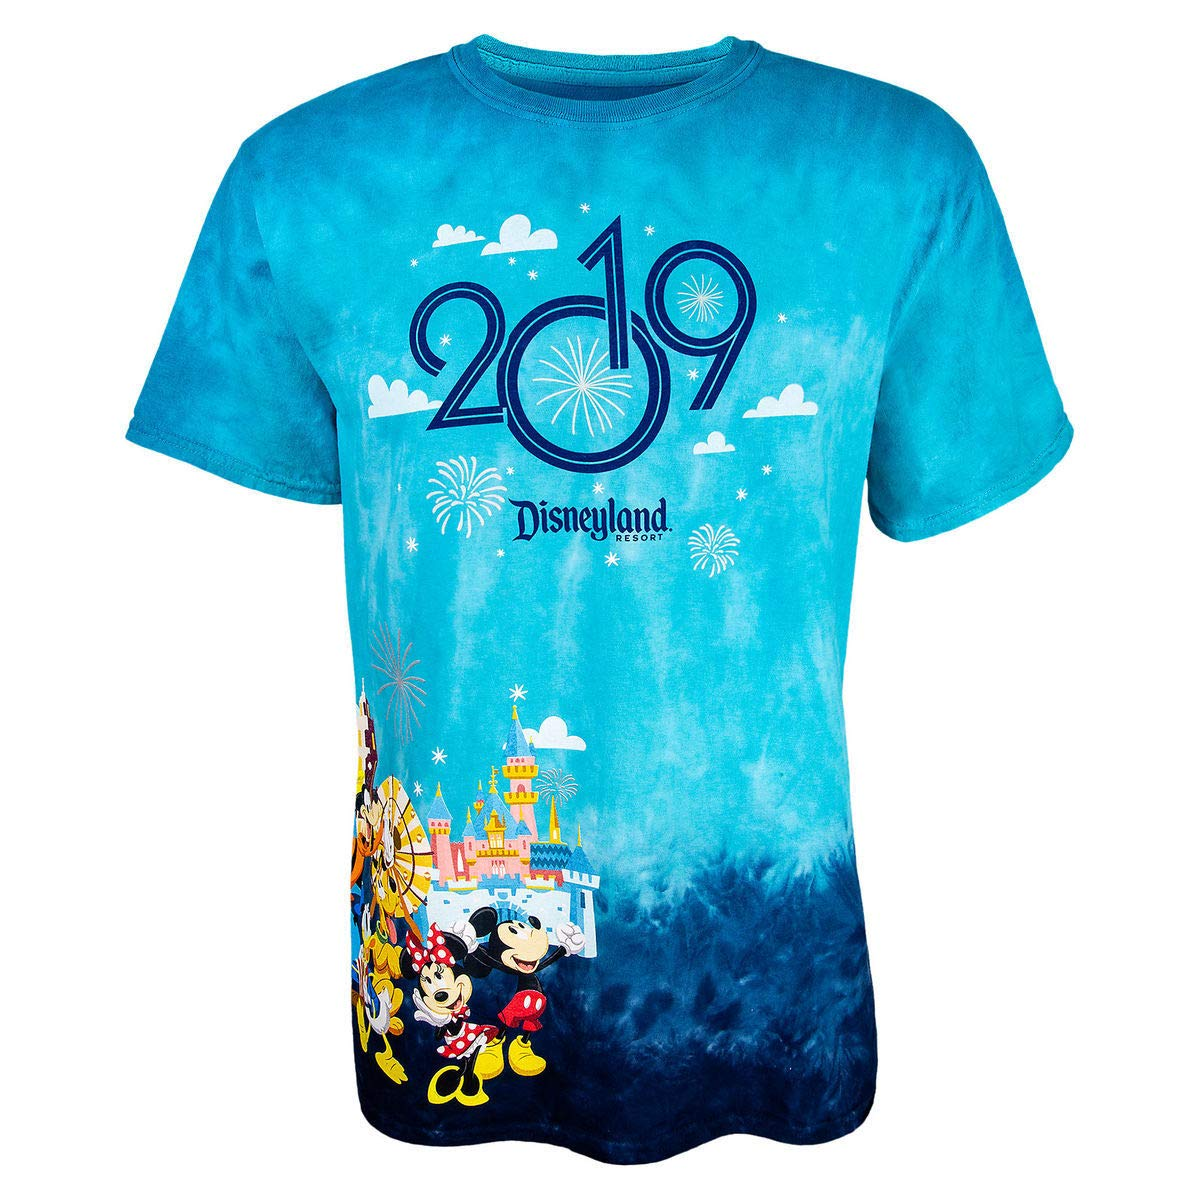 Disneyland Resort 2019 Mickey Mouse and Friends Tie-Dye T-Shirt for Adults